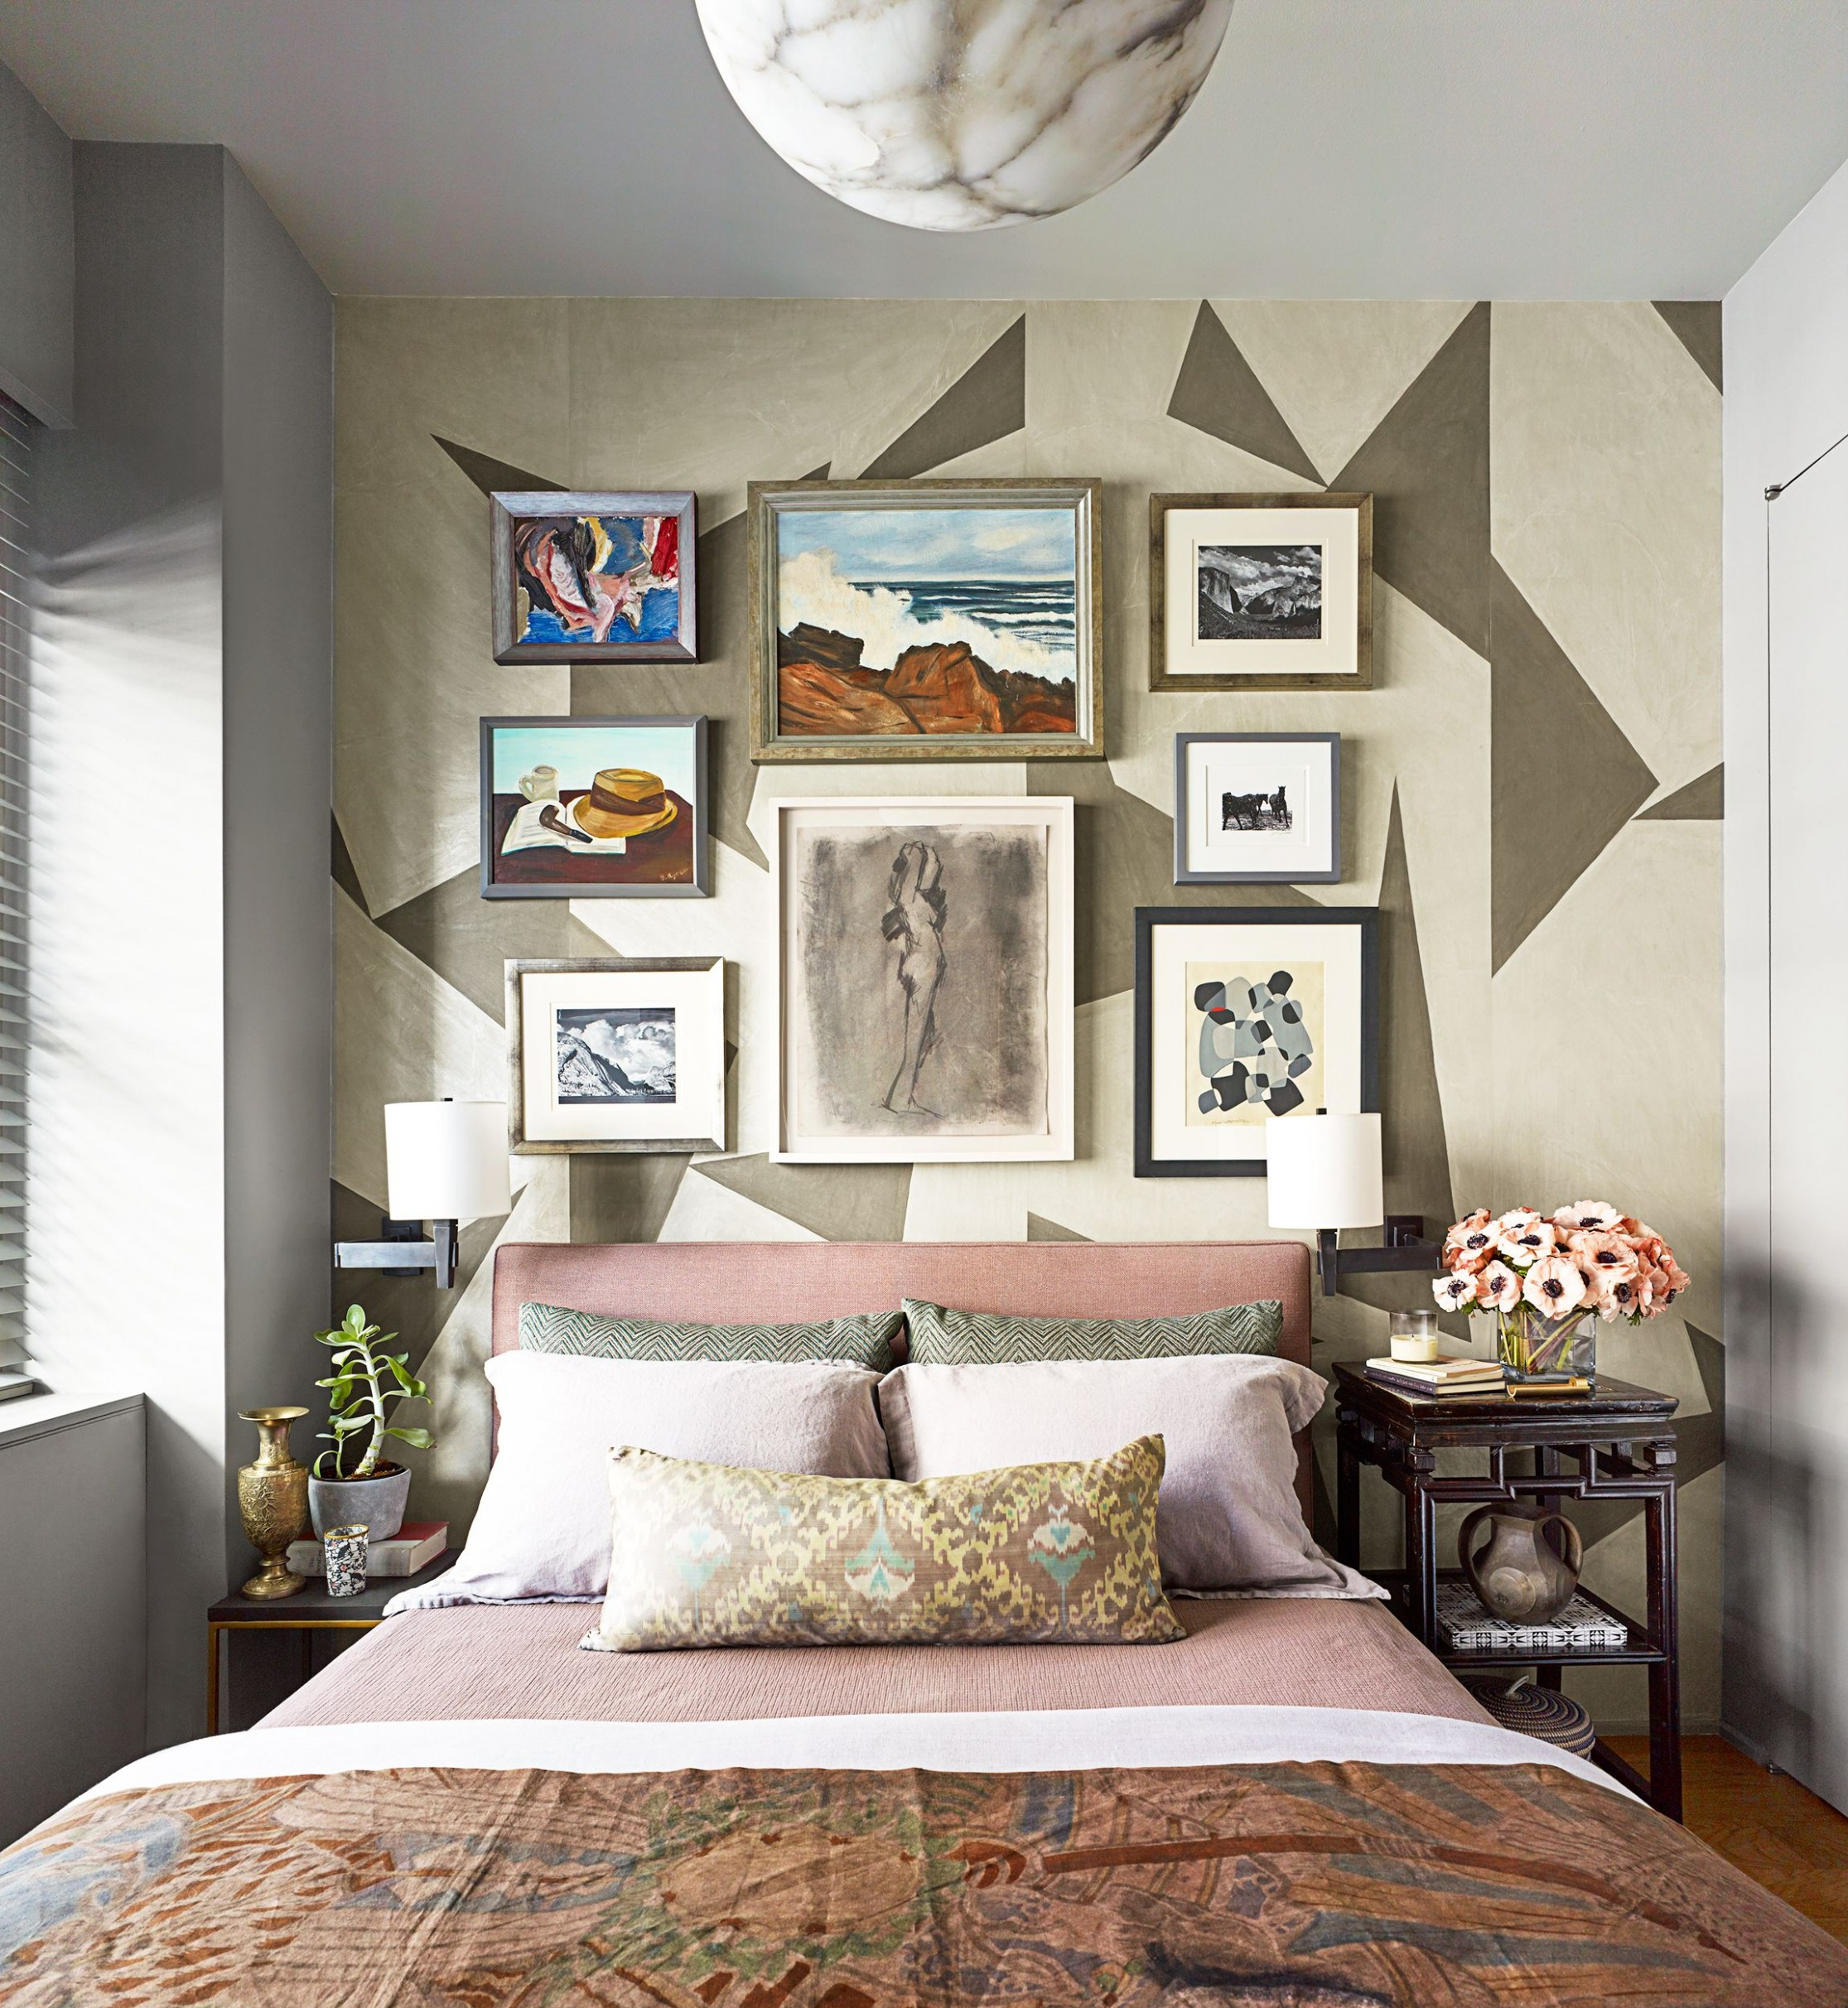 9 Small Bedroom Design Ideas - How to Decorate a Small Bedroom - 10X10 Bedroom Ideas